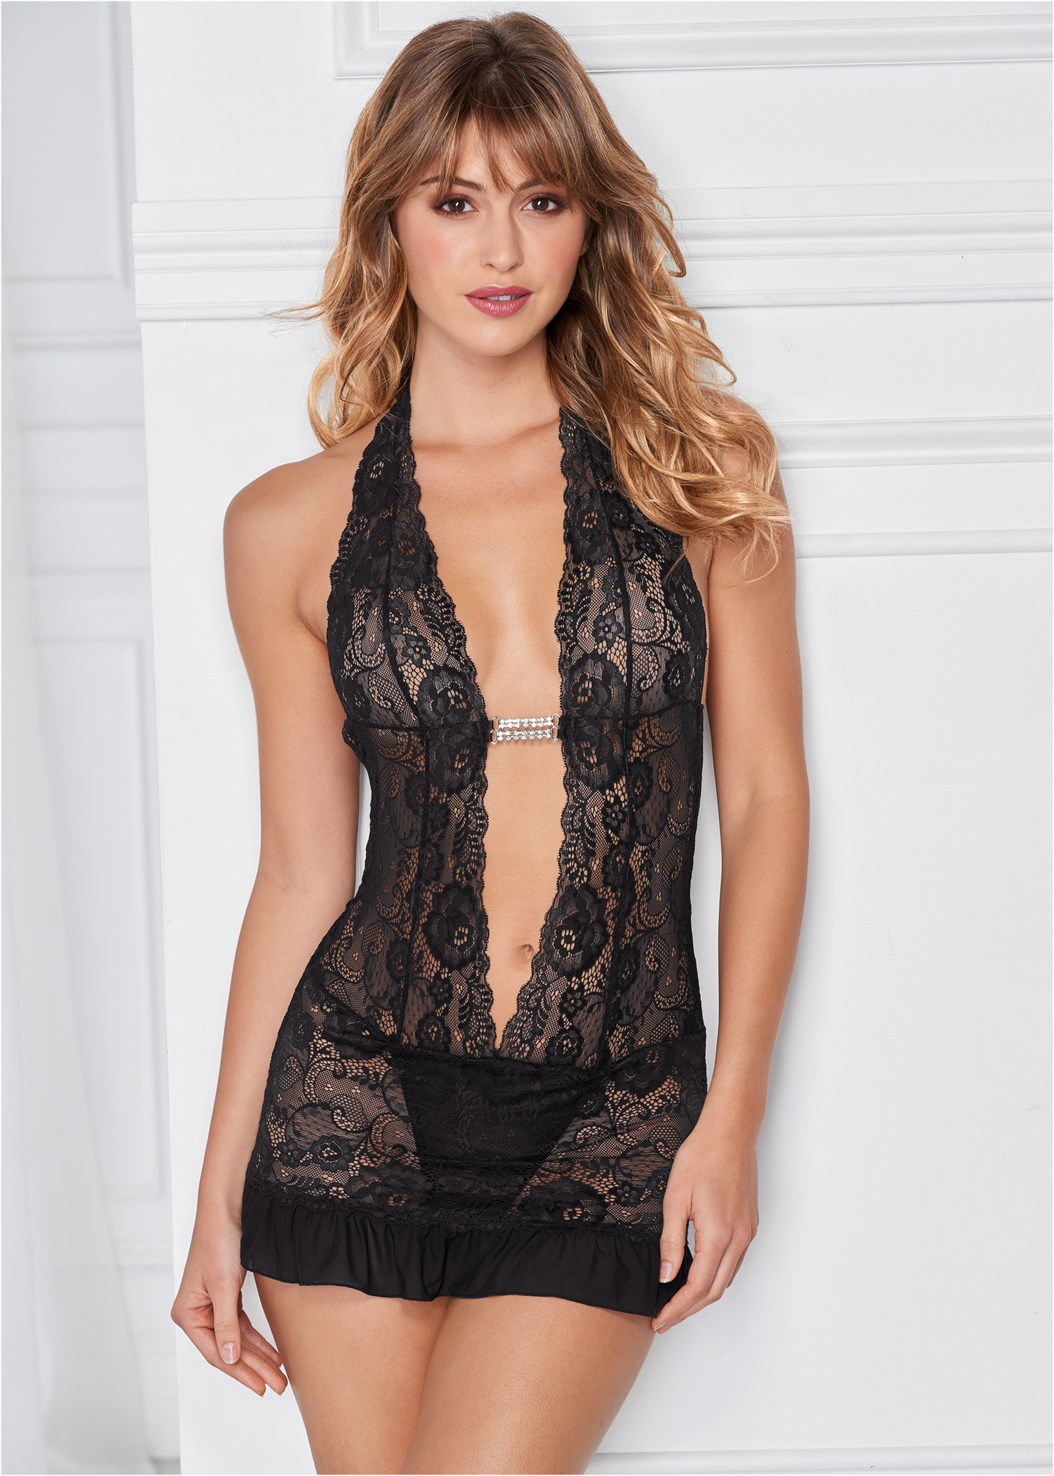 Deep V Sheer Lace Negligee,Fishnet Thigh Highs,Embellished Resin Earrings,Print Detail Handbag